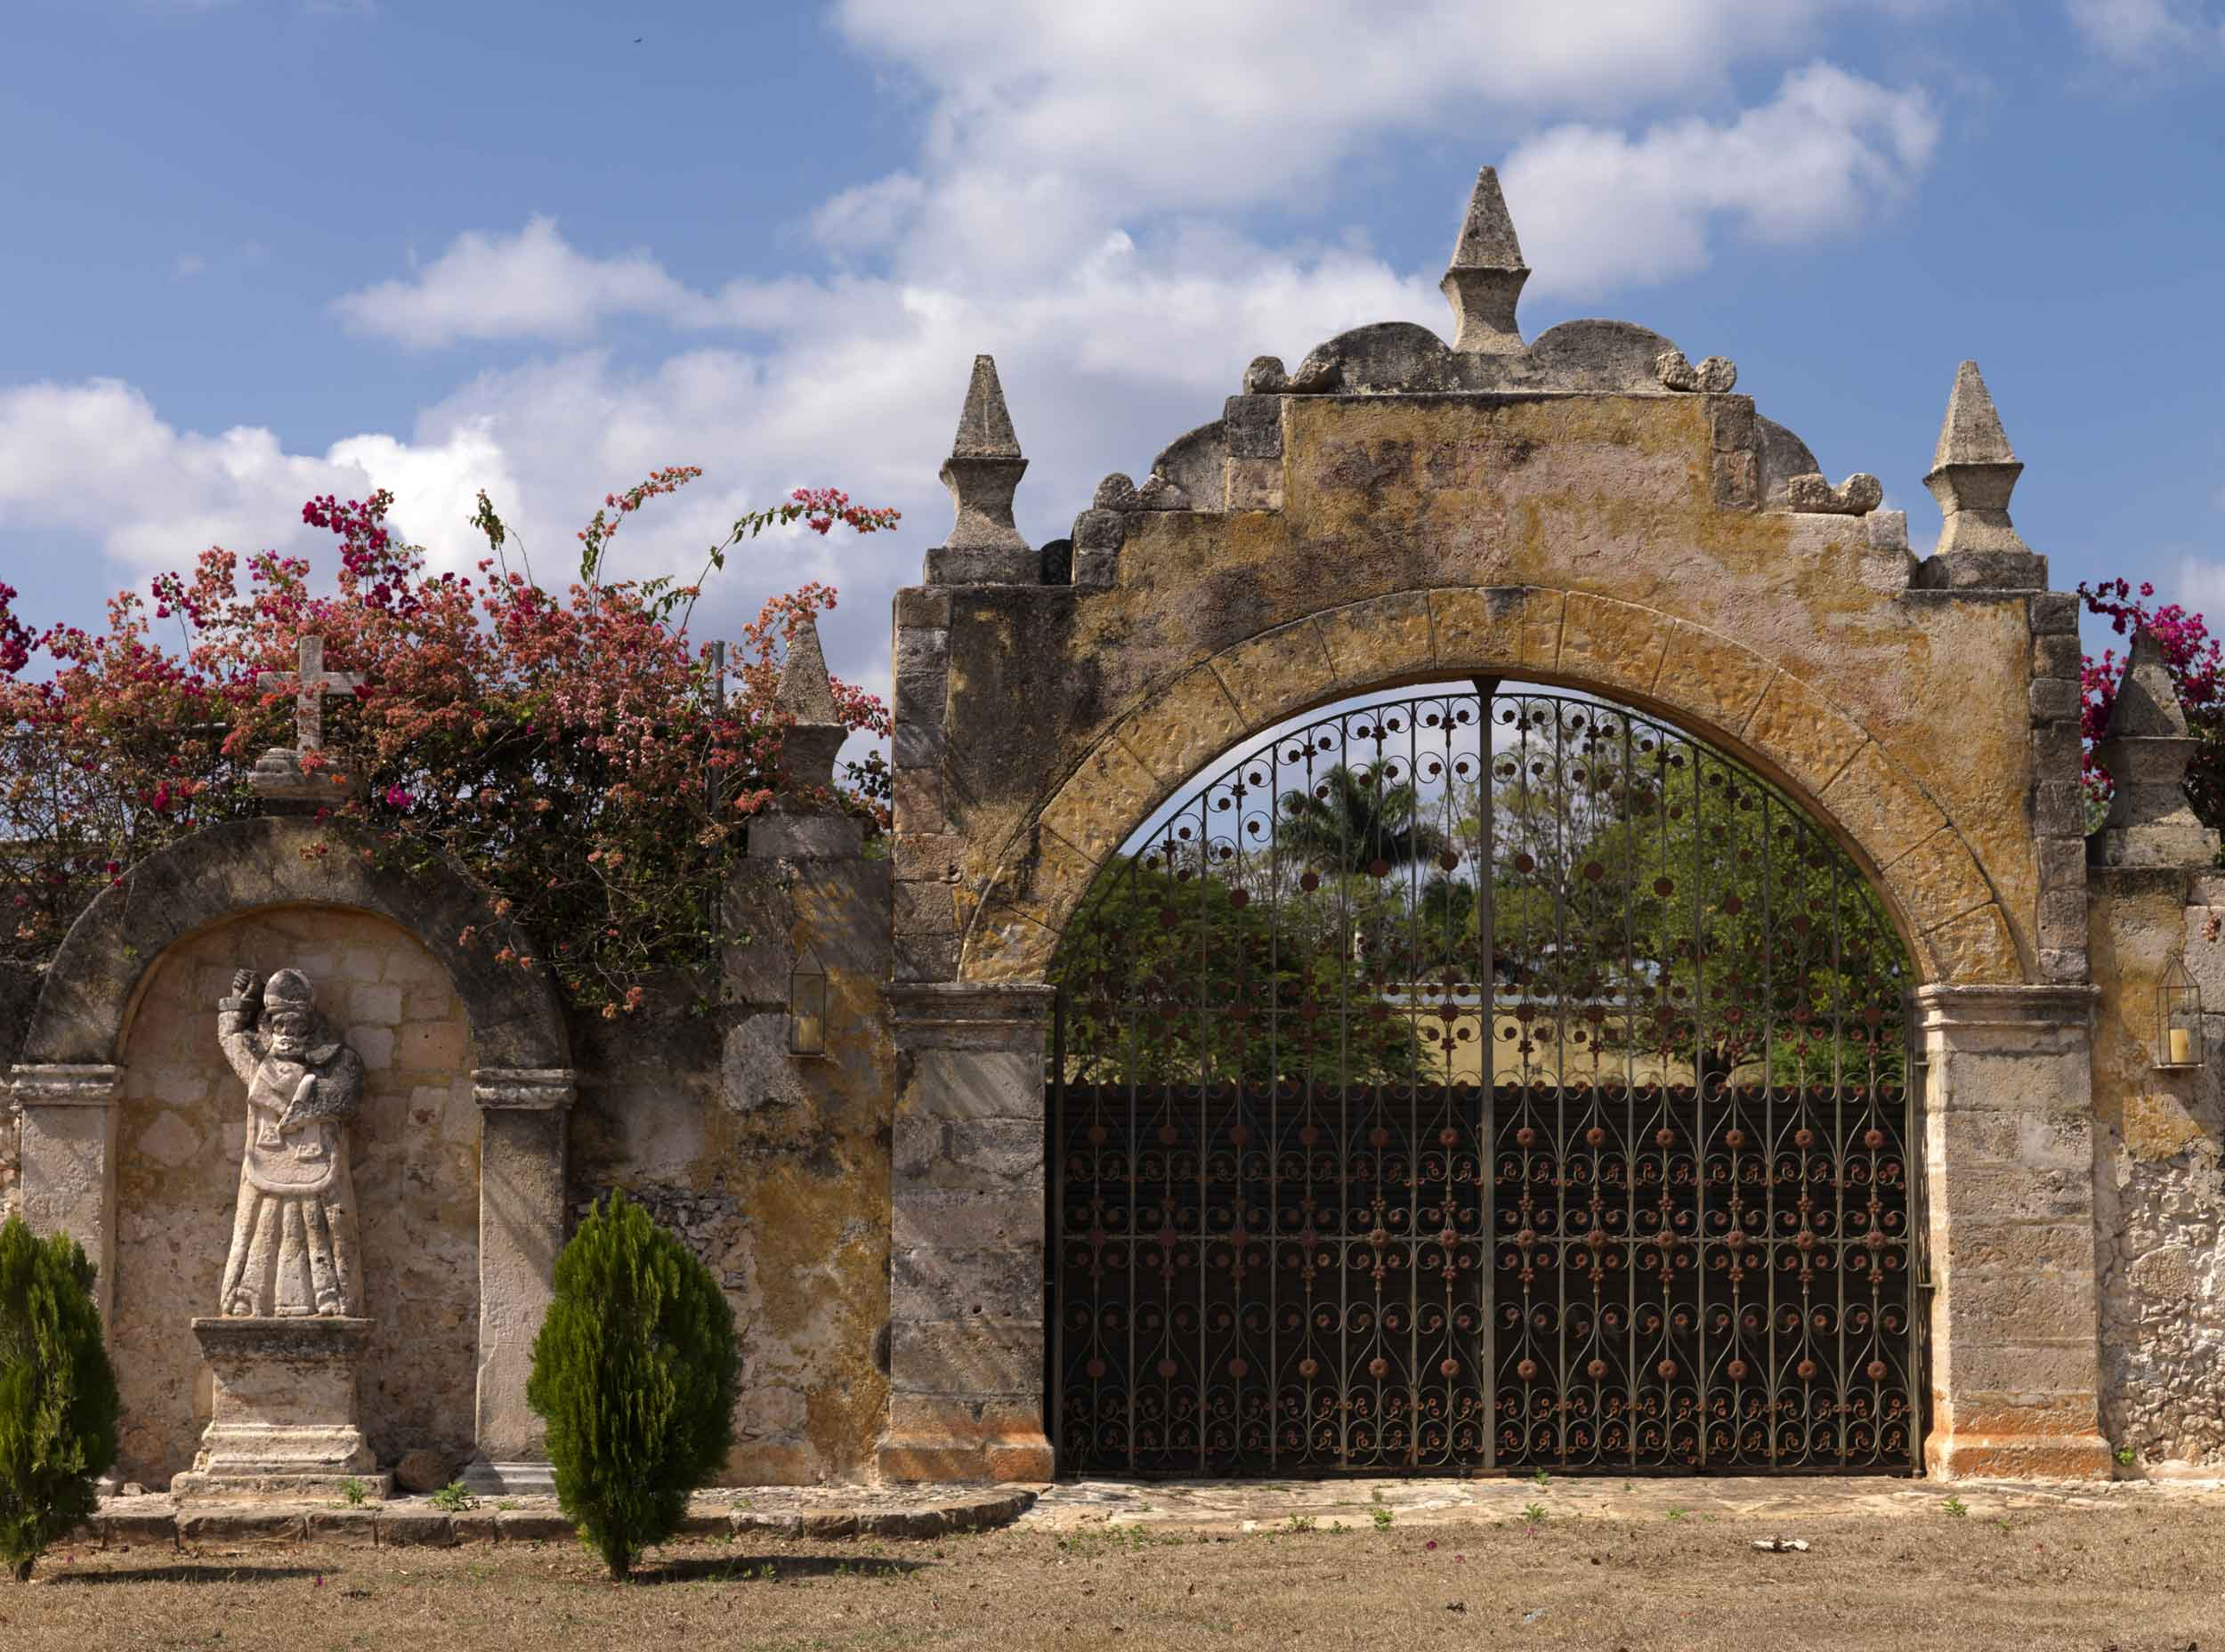 Hacienda San Bernardo, a palatial estate on the Yucatan Peninsula, is rooted in Mexican history. The tropical grounds reveal a treasure trove of sculptures, statuary, and water features.